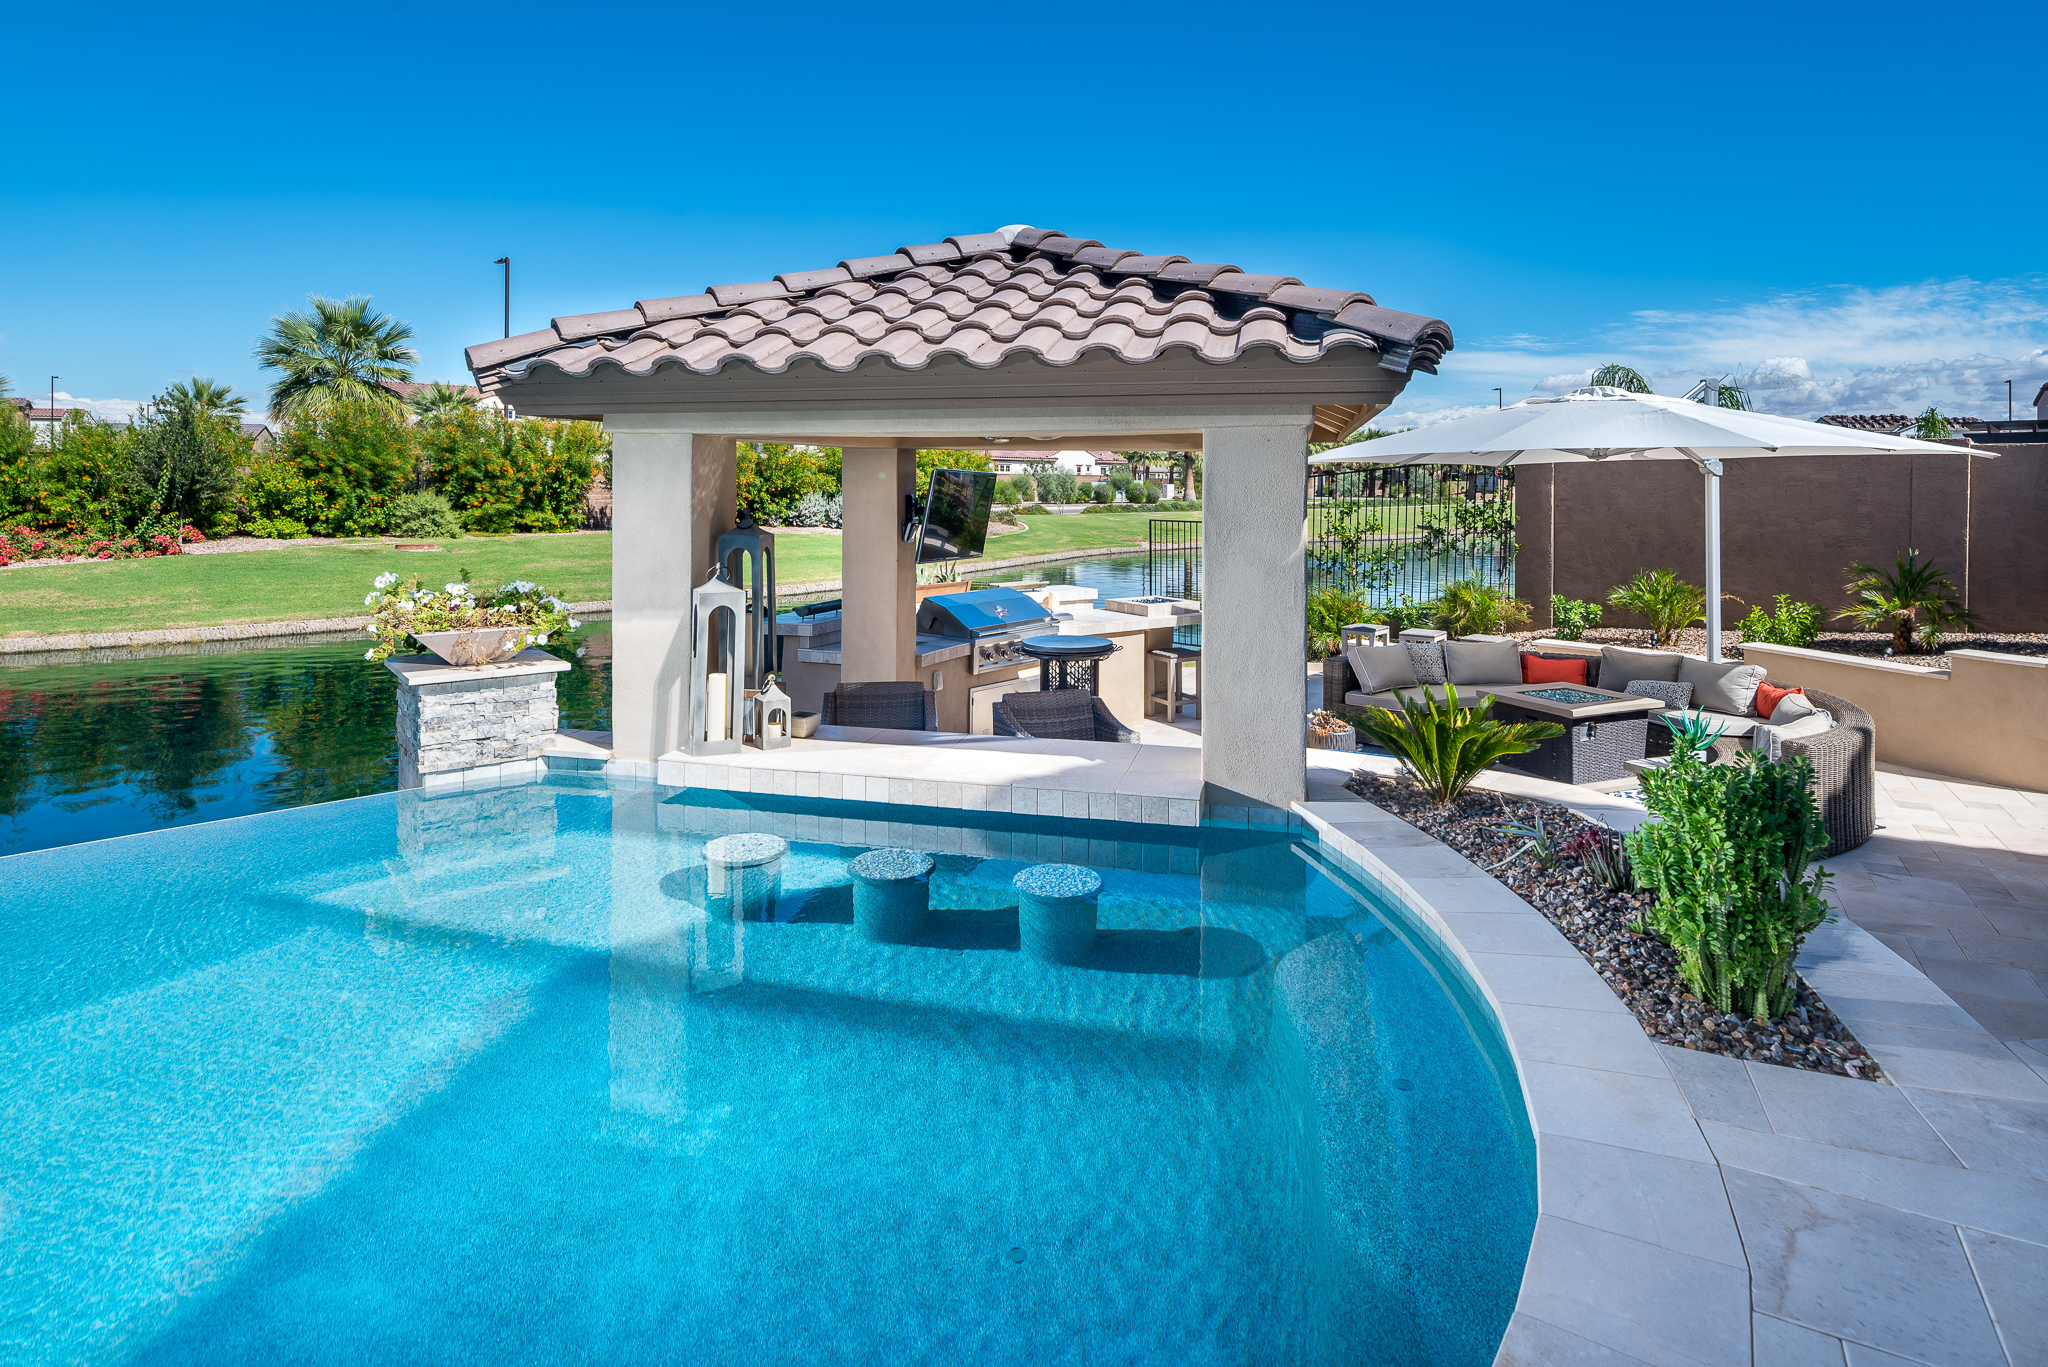 Swimming Pool Financing: What You Should Know